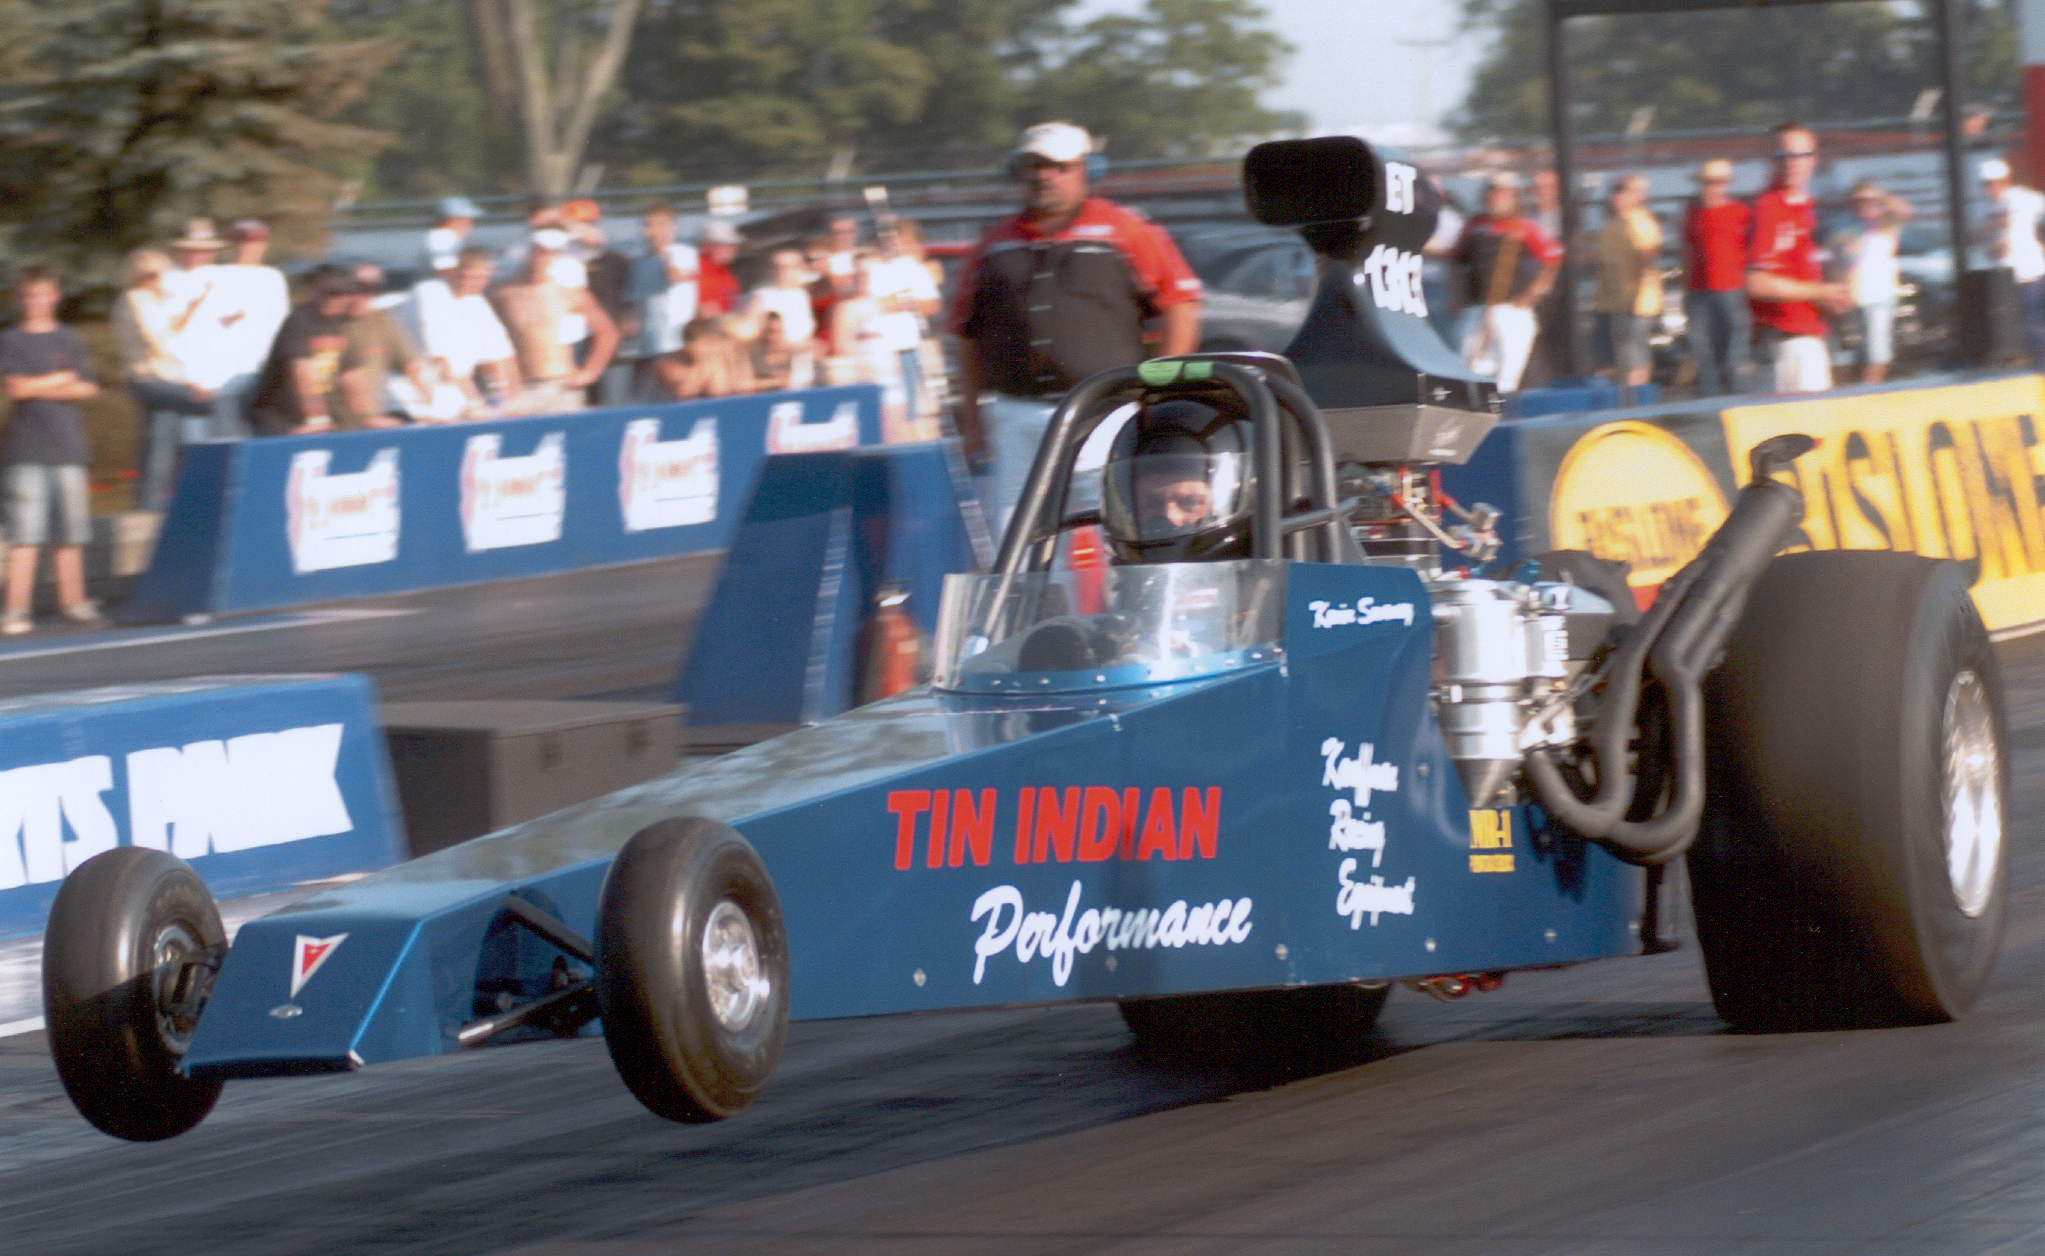 Tin Indian Performance Pontiac dragster wheels up launch at Norwalk